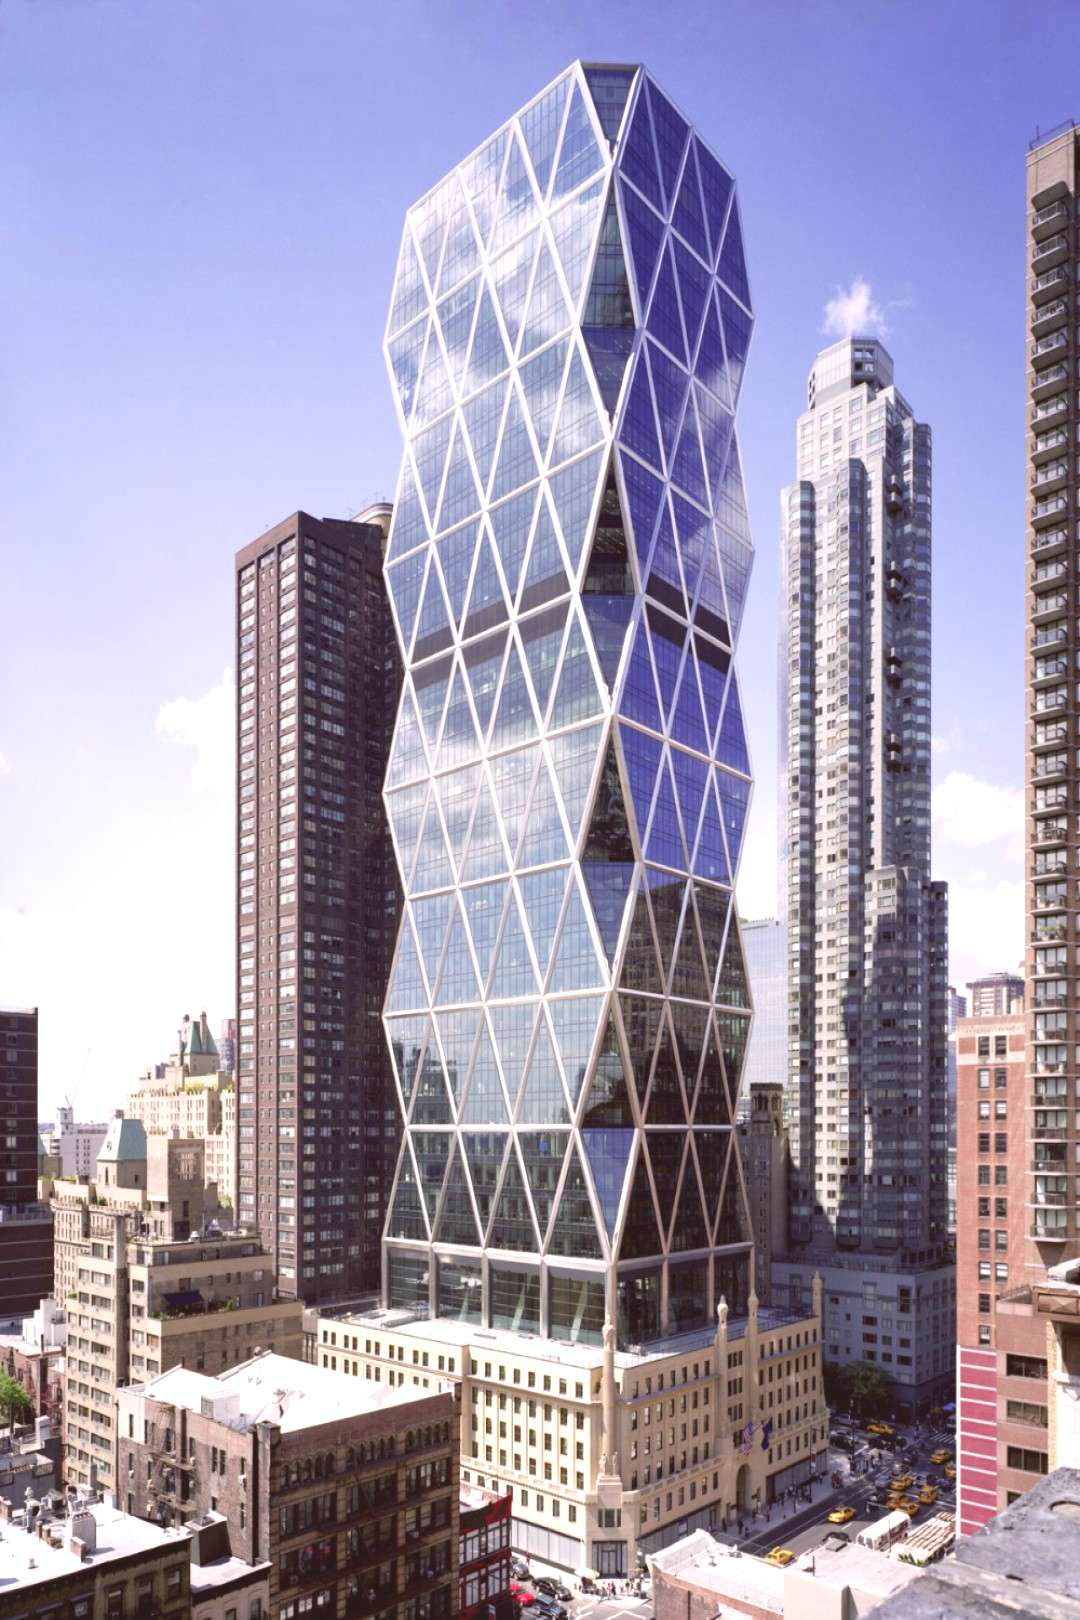 Norman Foster, Daniel Libeskind, and More Create Modern Architecture with Adaptive Reuse | Architec